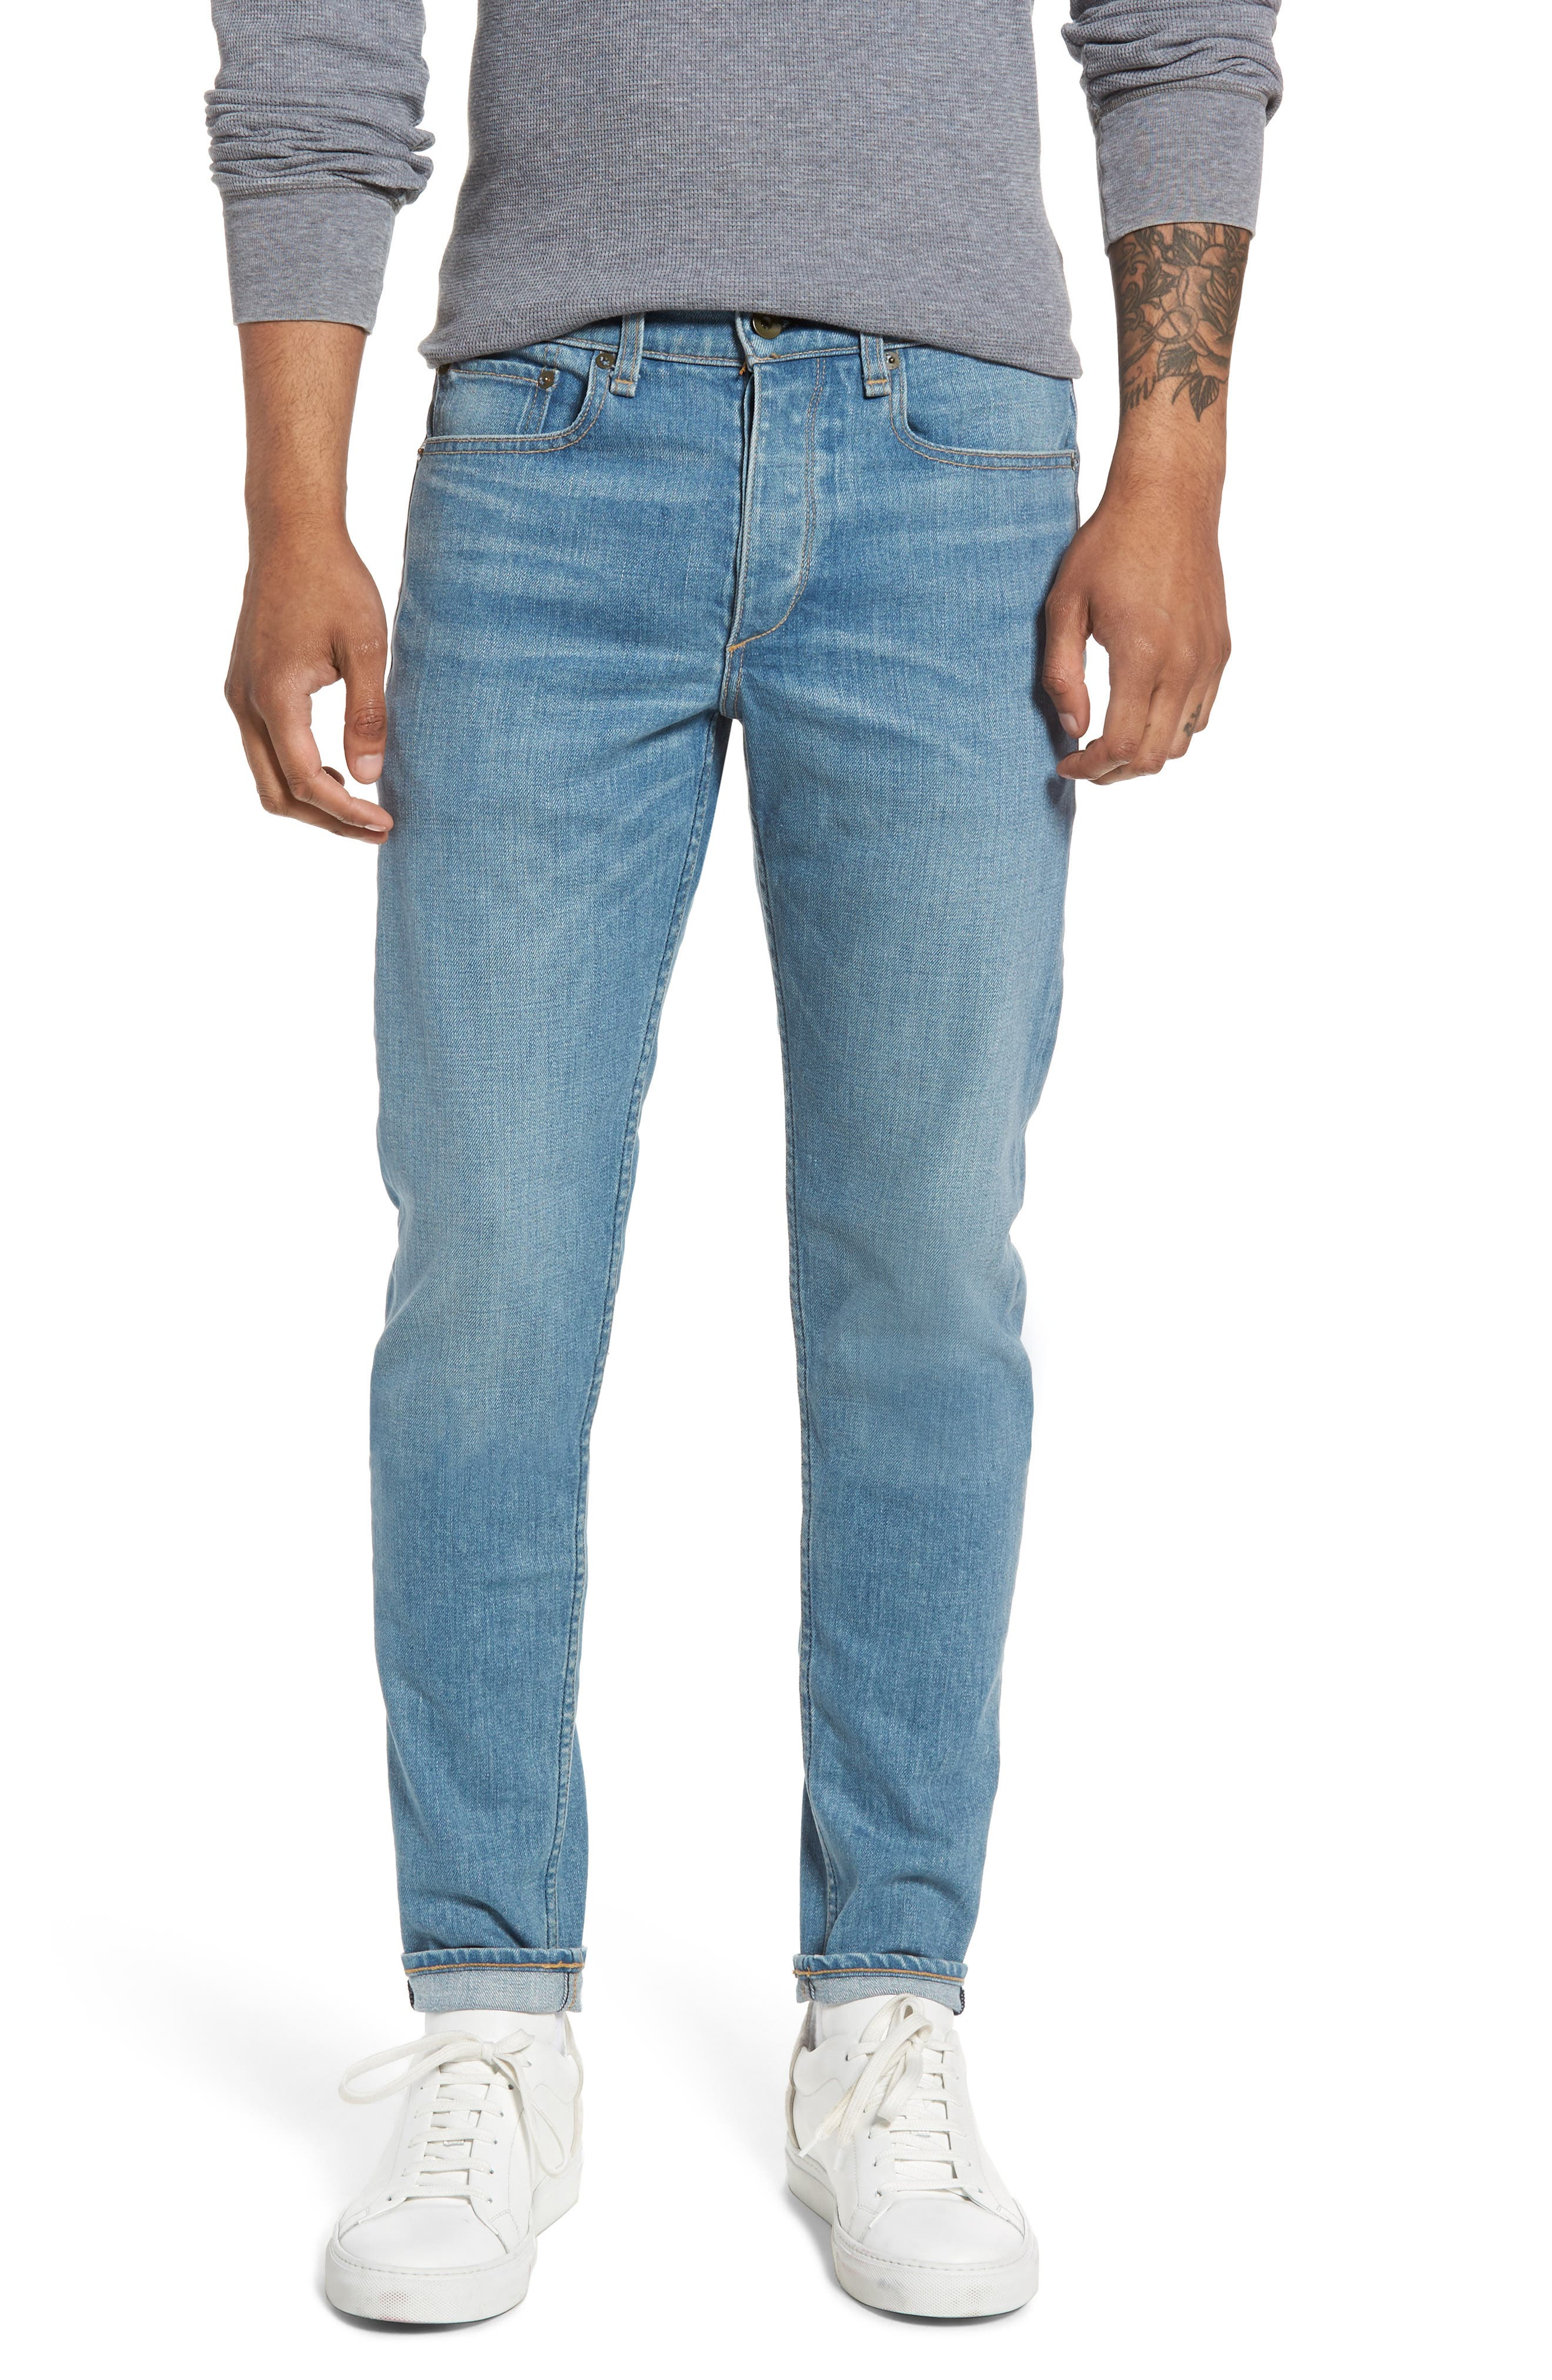 designer jeans for men | nordstrom | nordstrom